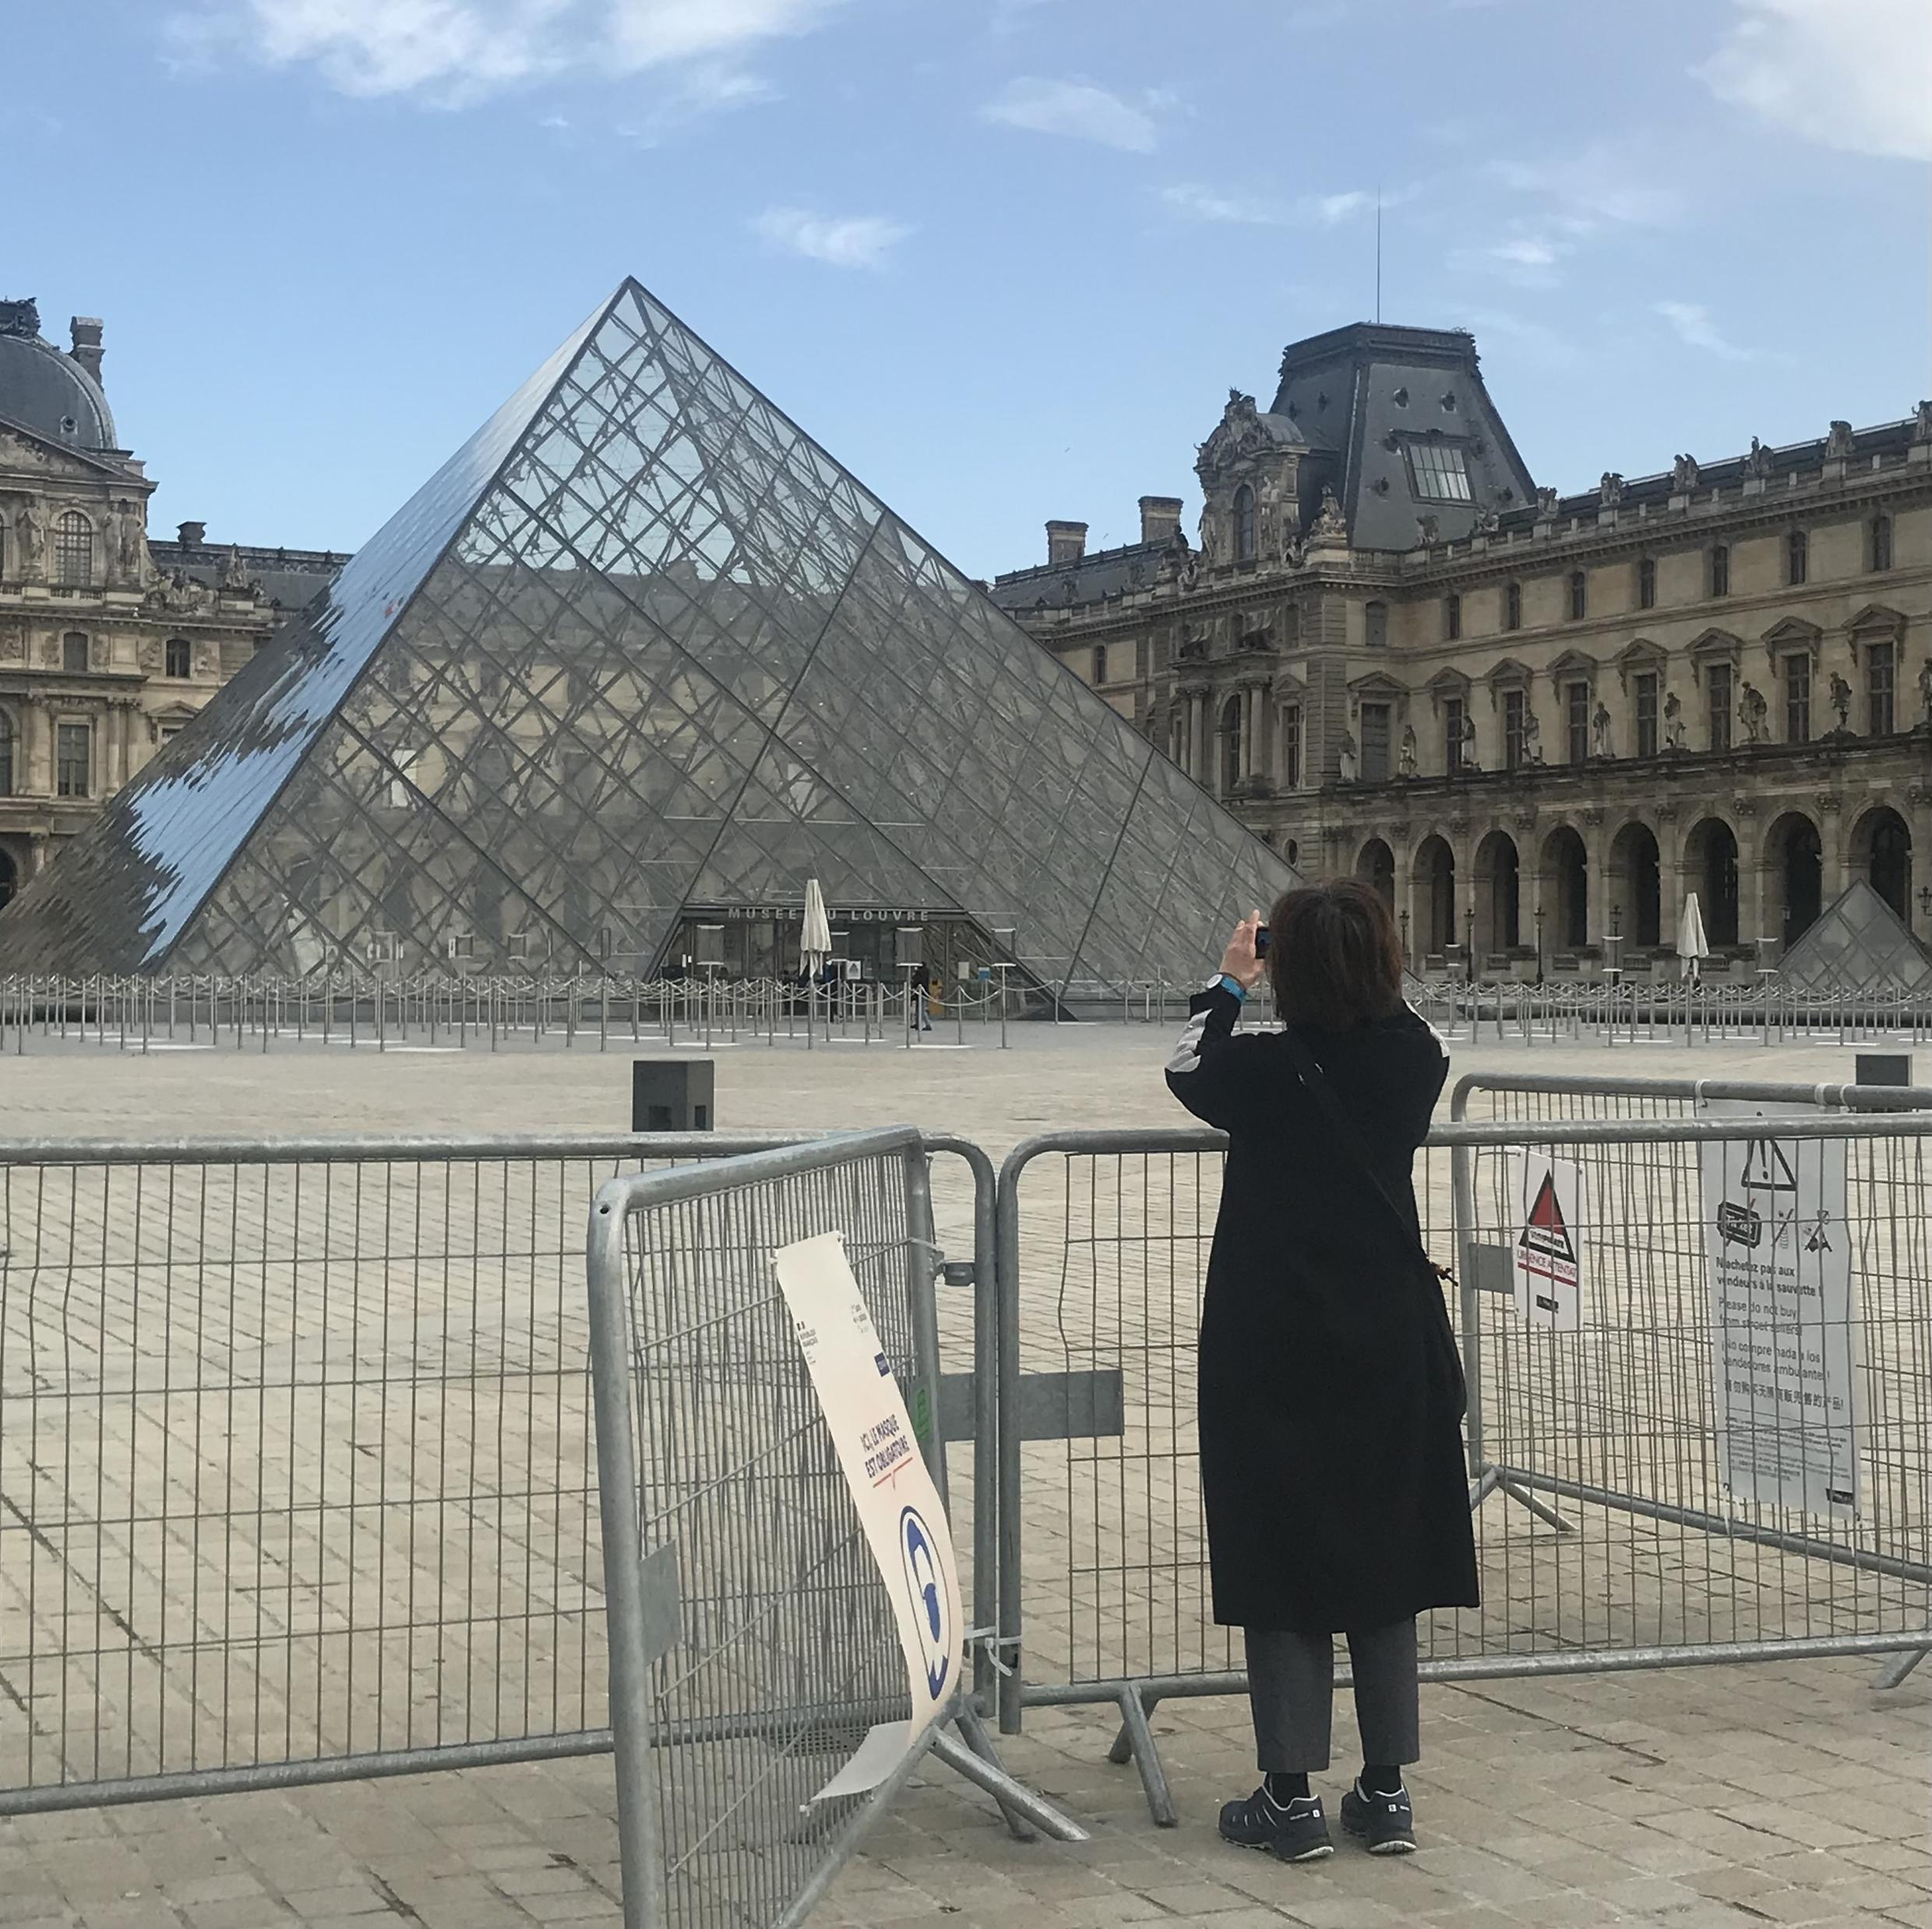 A woman takes a photo in front of the closed gates of the Louvre museum in Paris. On February 22, 2021